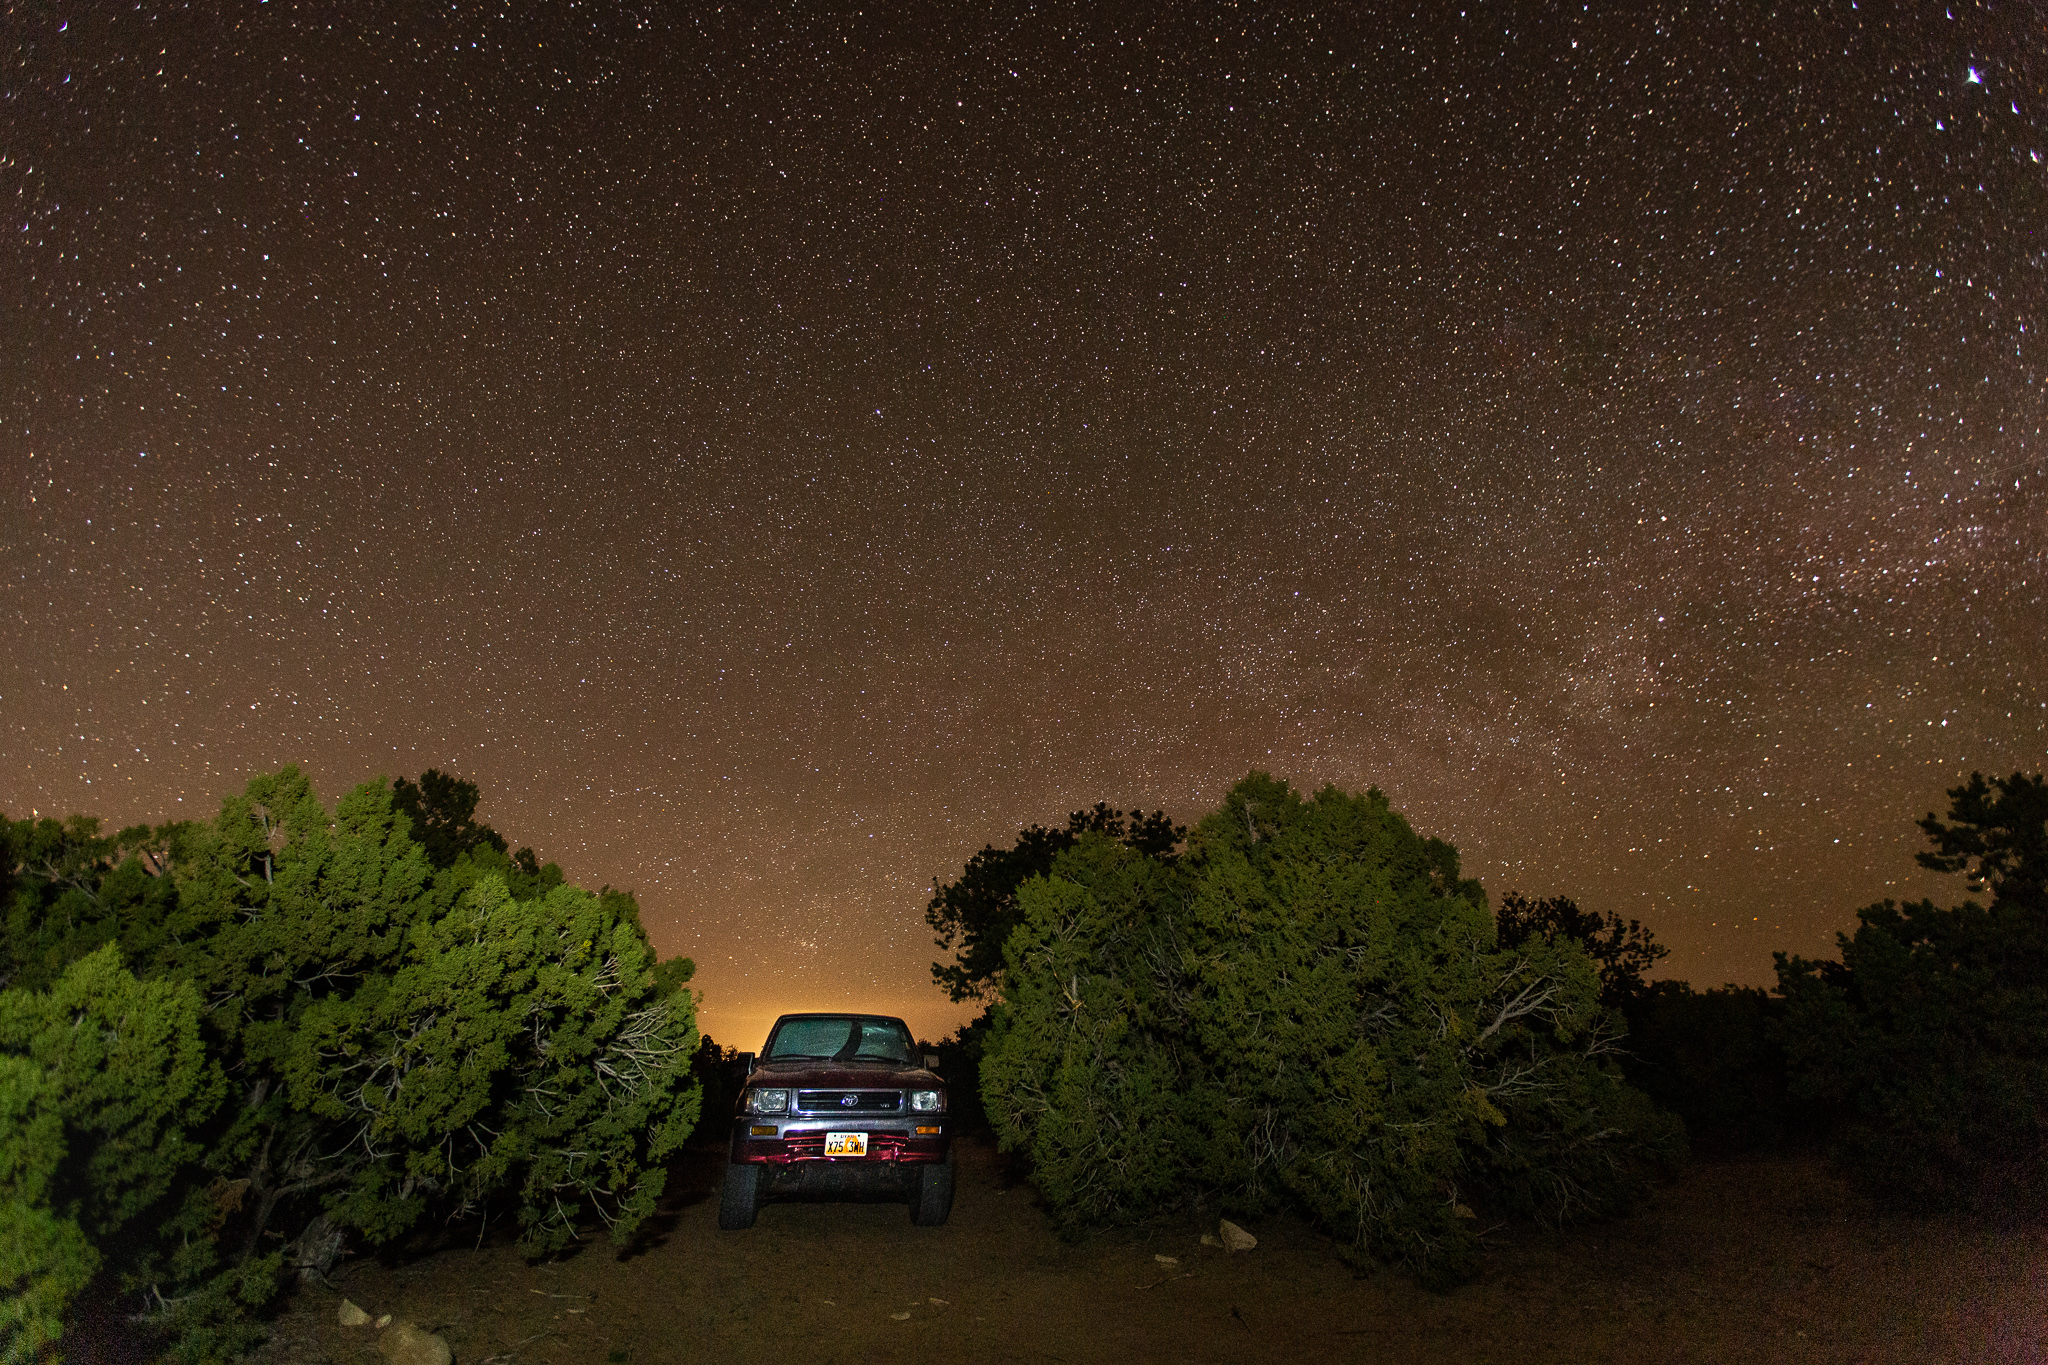 2017_05_20_Toyota-milky-way-web.jpg